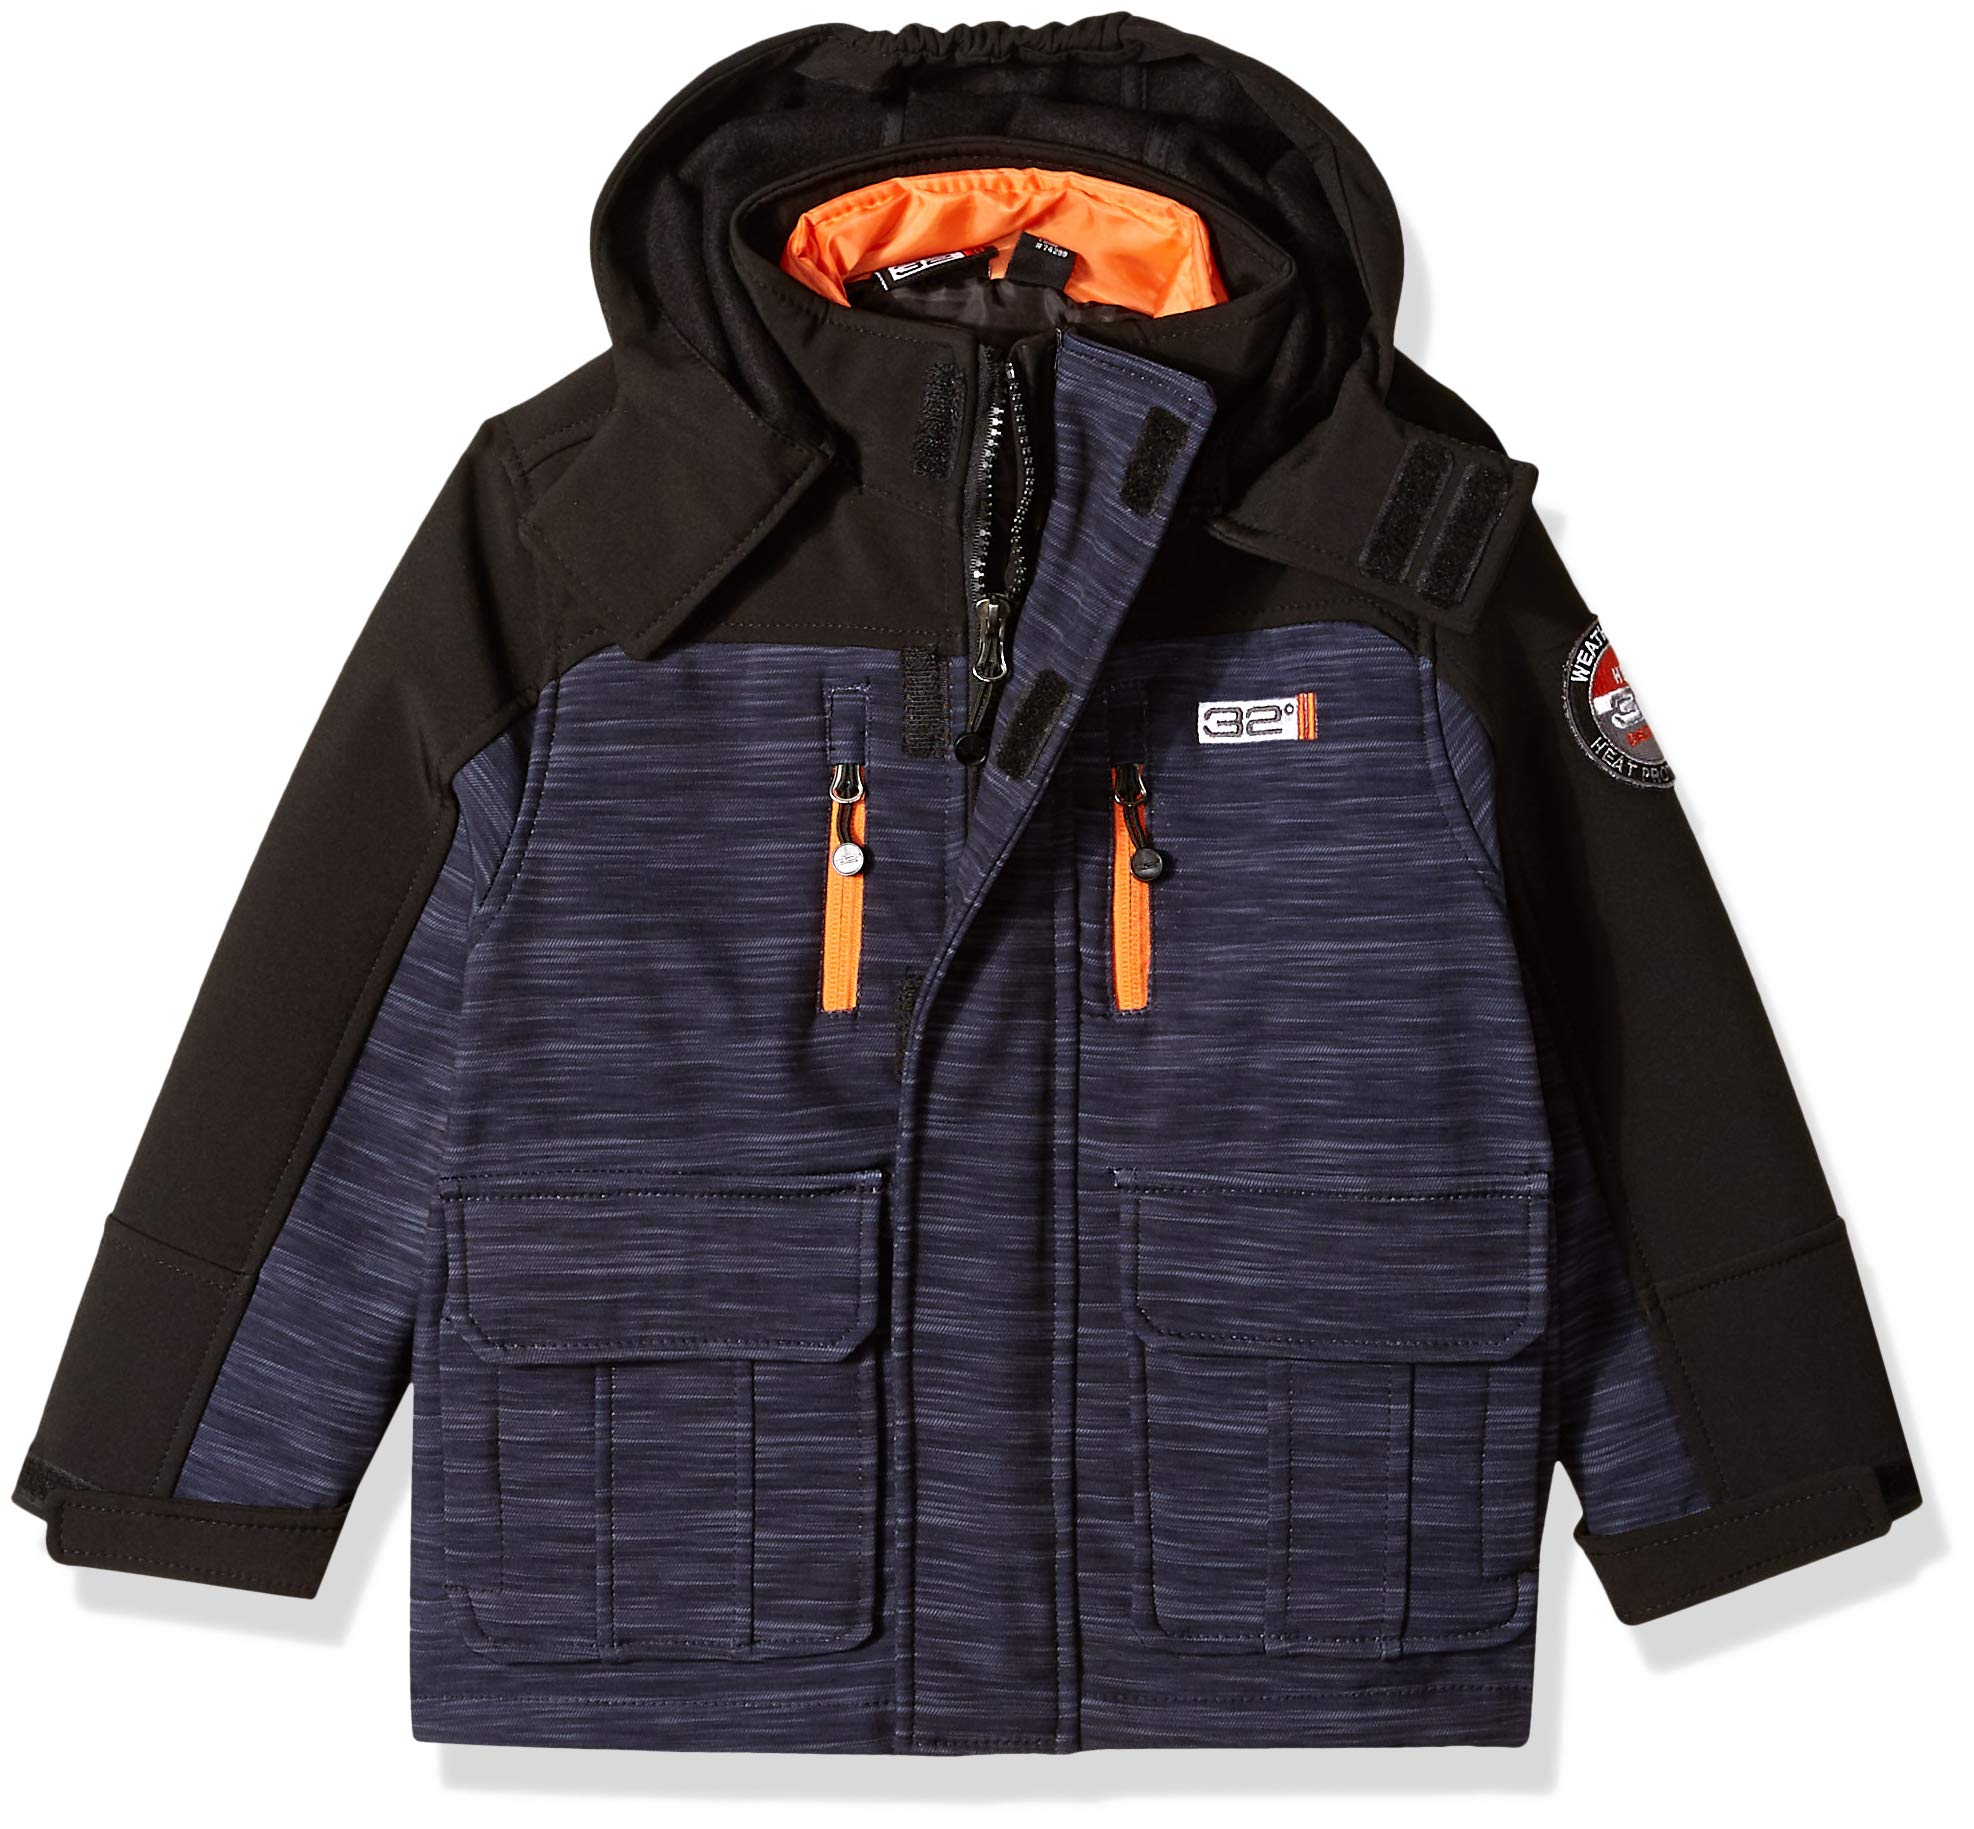 32 DEGREES Weatherproof Boys' Little Outerwear Jacket (More Styles Available), Softshell Systems Charcoal Heather/Black, 4 by 32 DEGREES (Image #1)